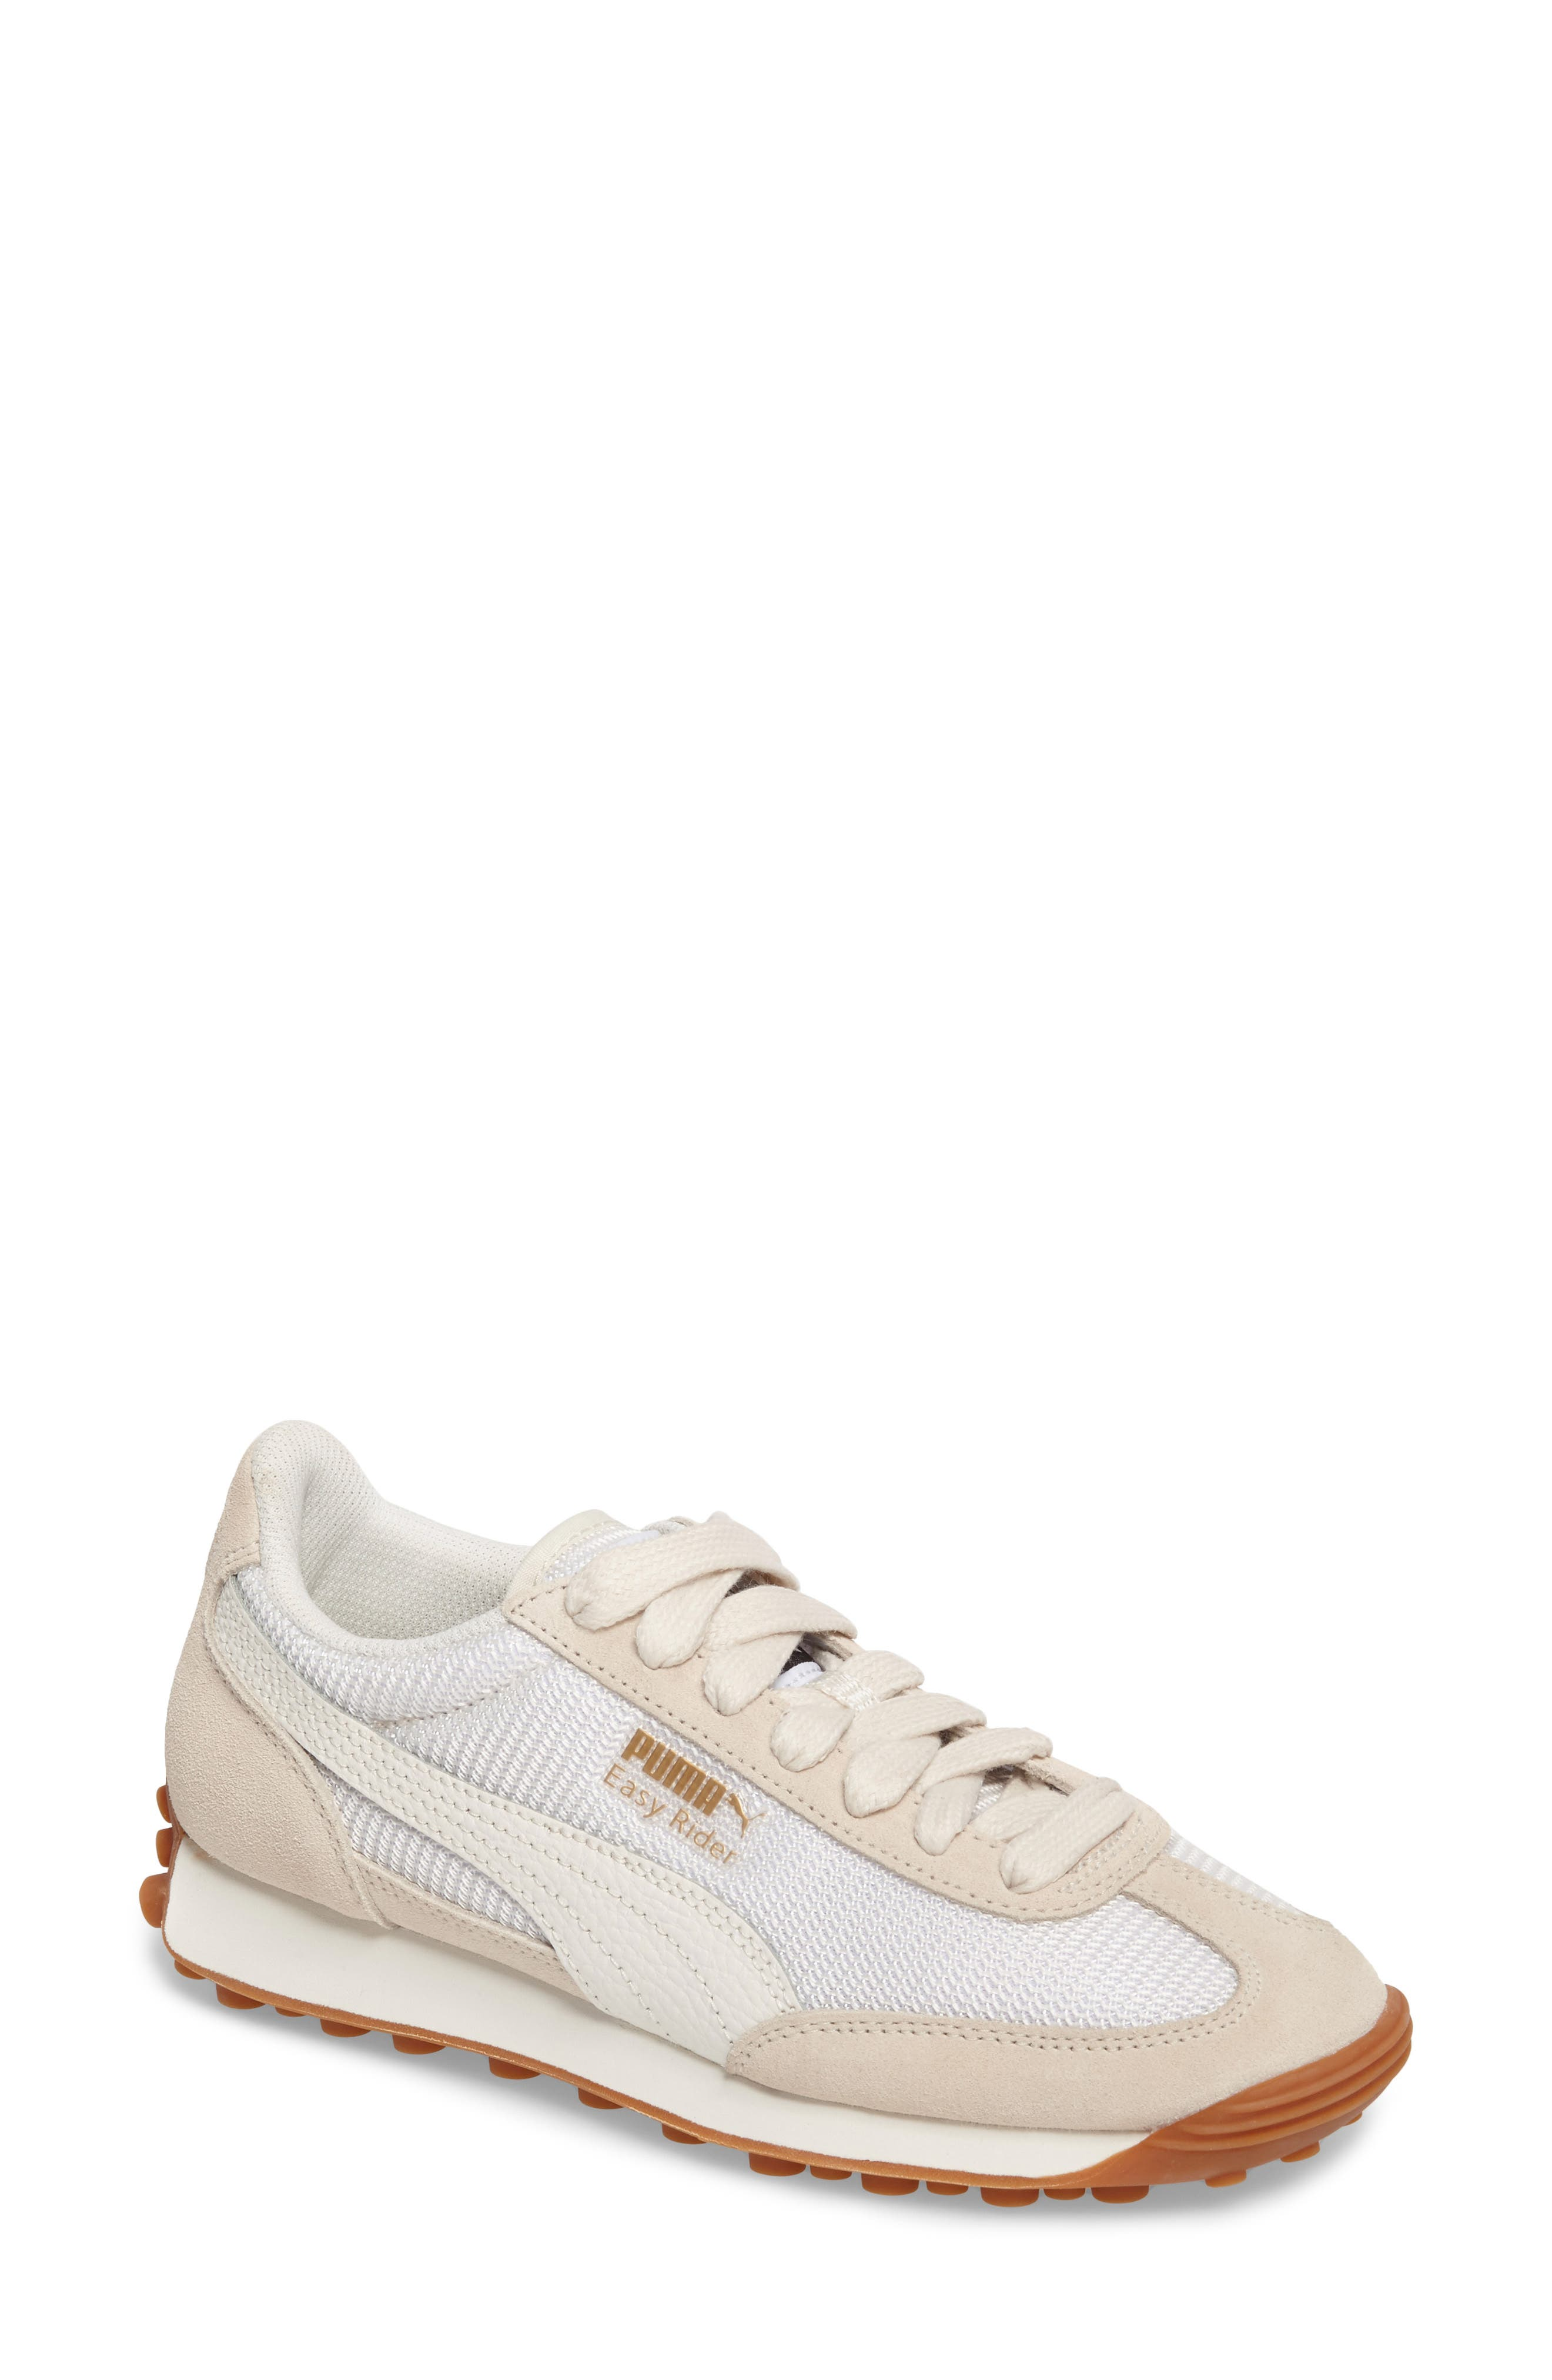 Easy Rider Sneaker,                         Main,                         color, Marshmallow/ Marshmallow